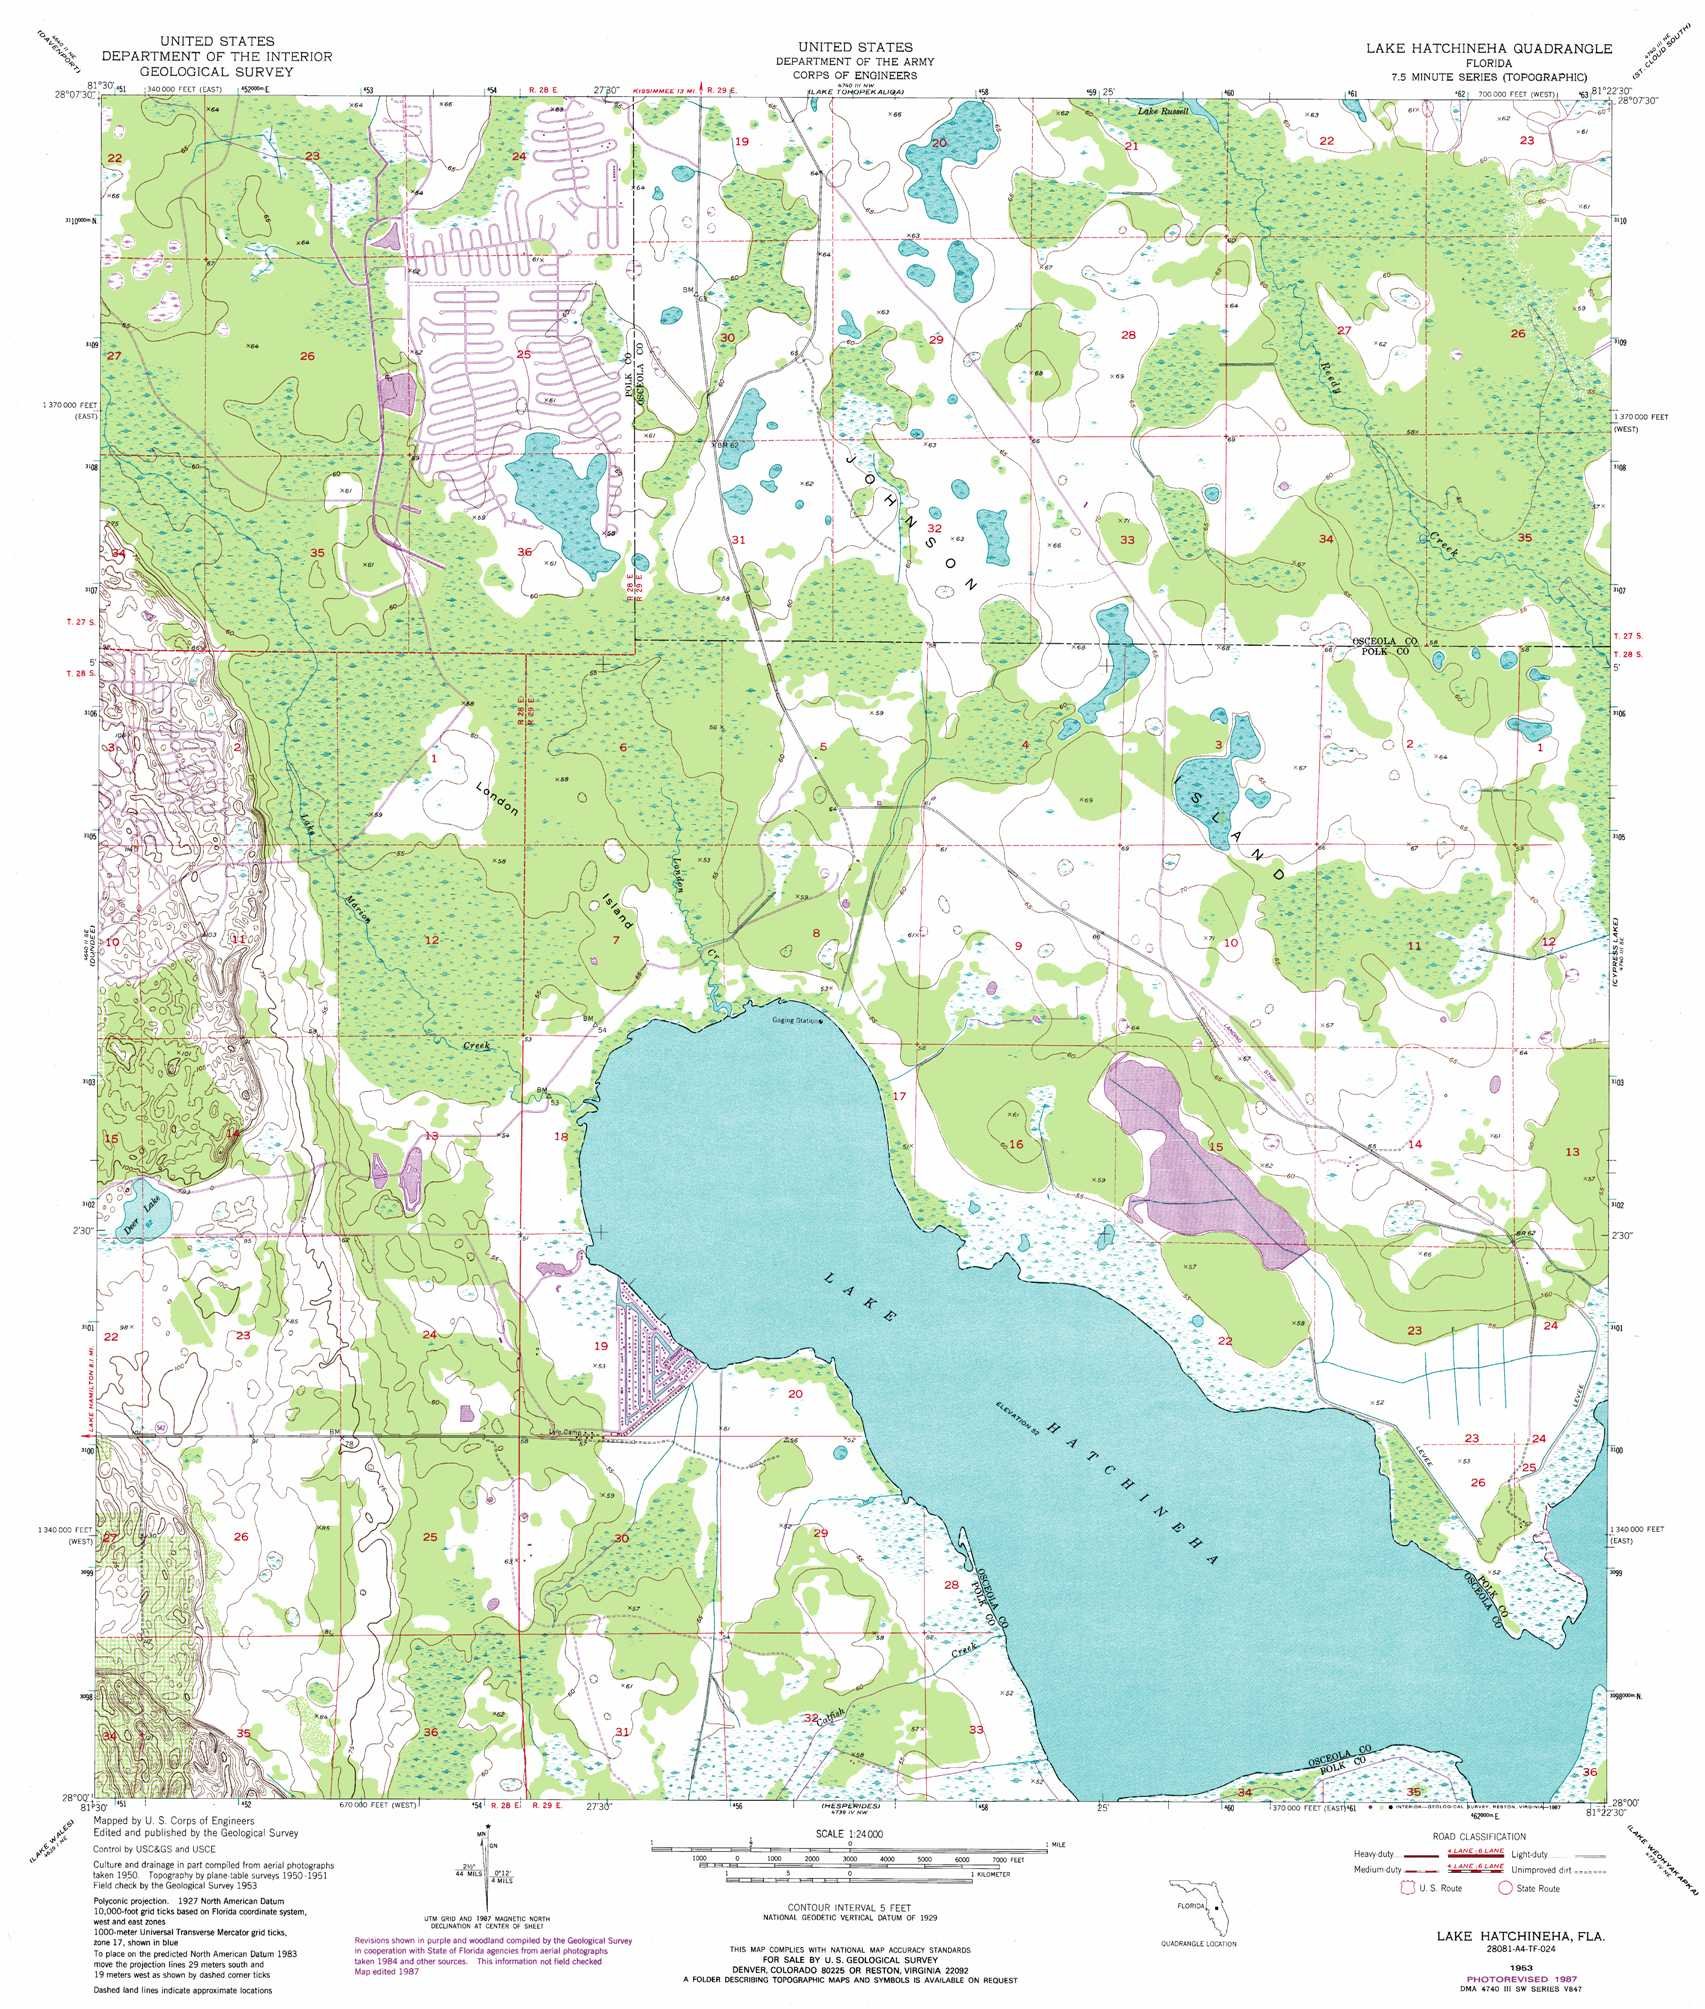 florida topo map - 28 images - file florida topographic map en svg ...